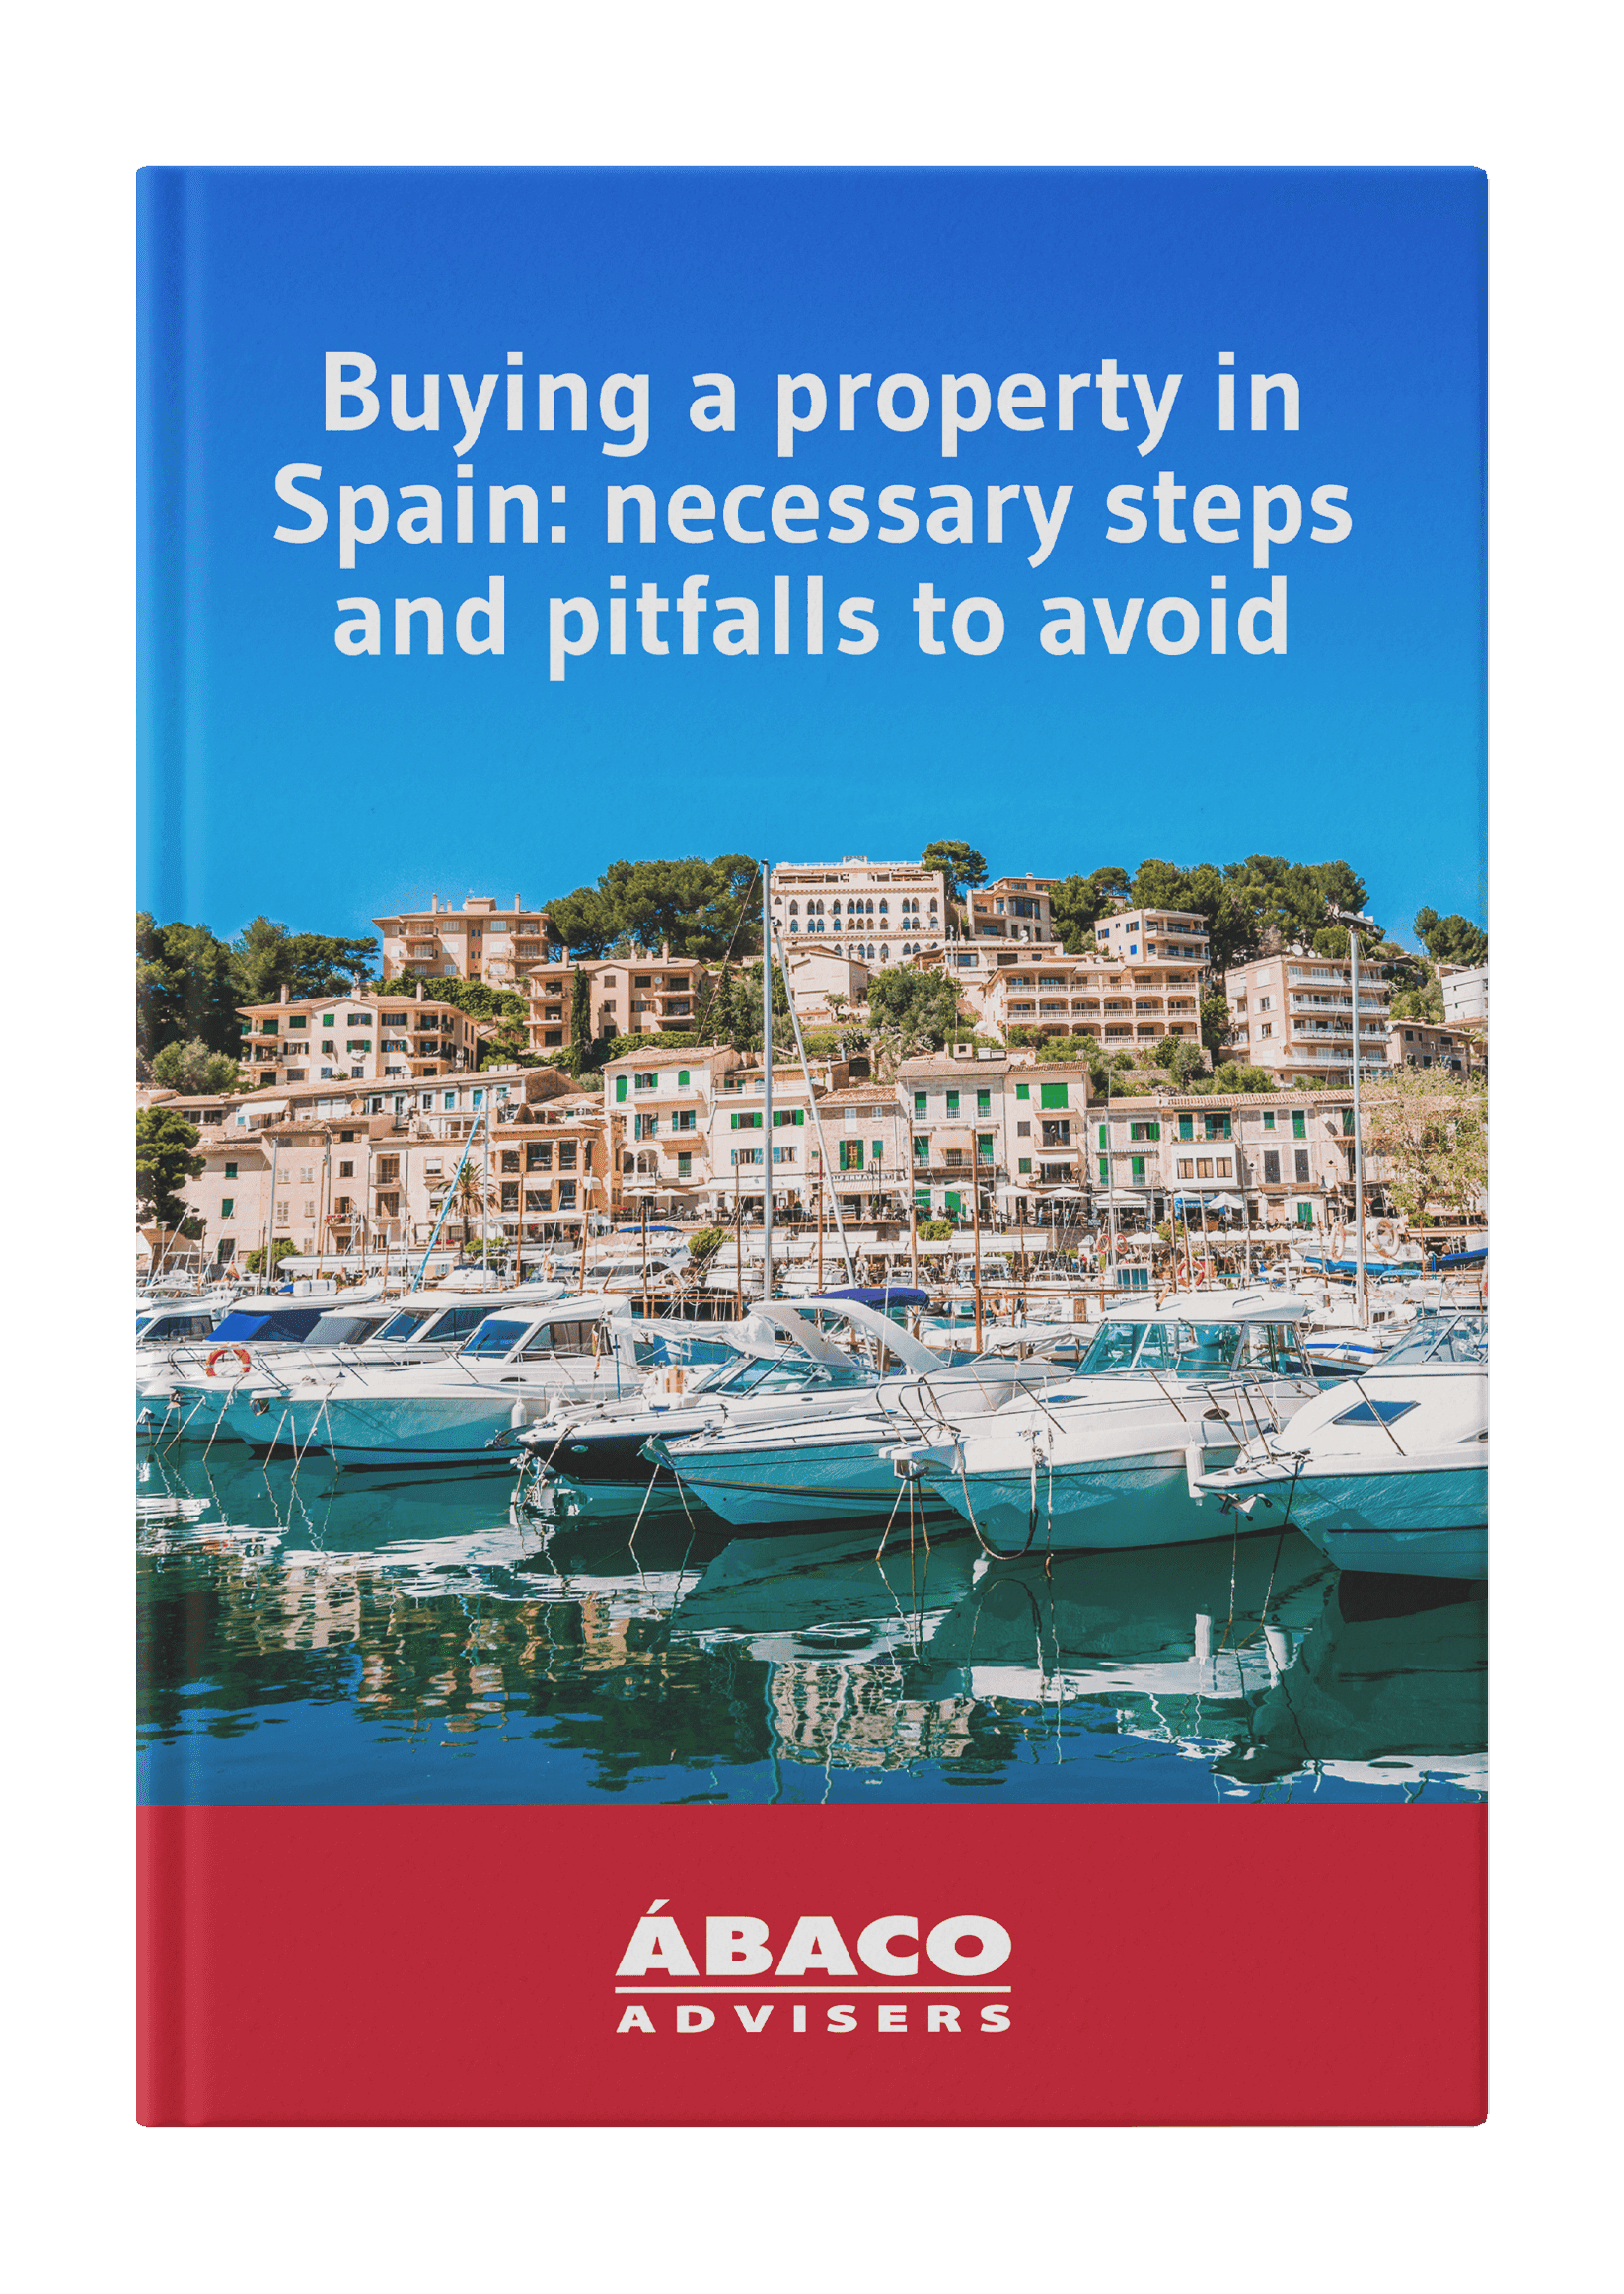 Buying a property in Spain: necessary steps and pitfalls to avoid